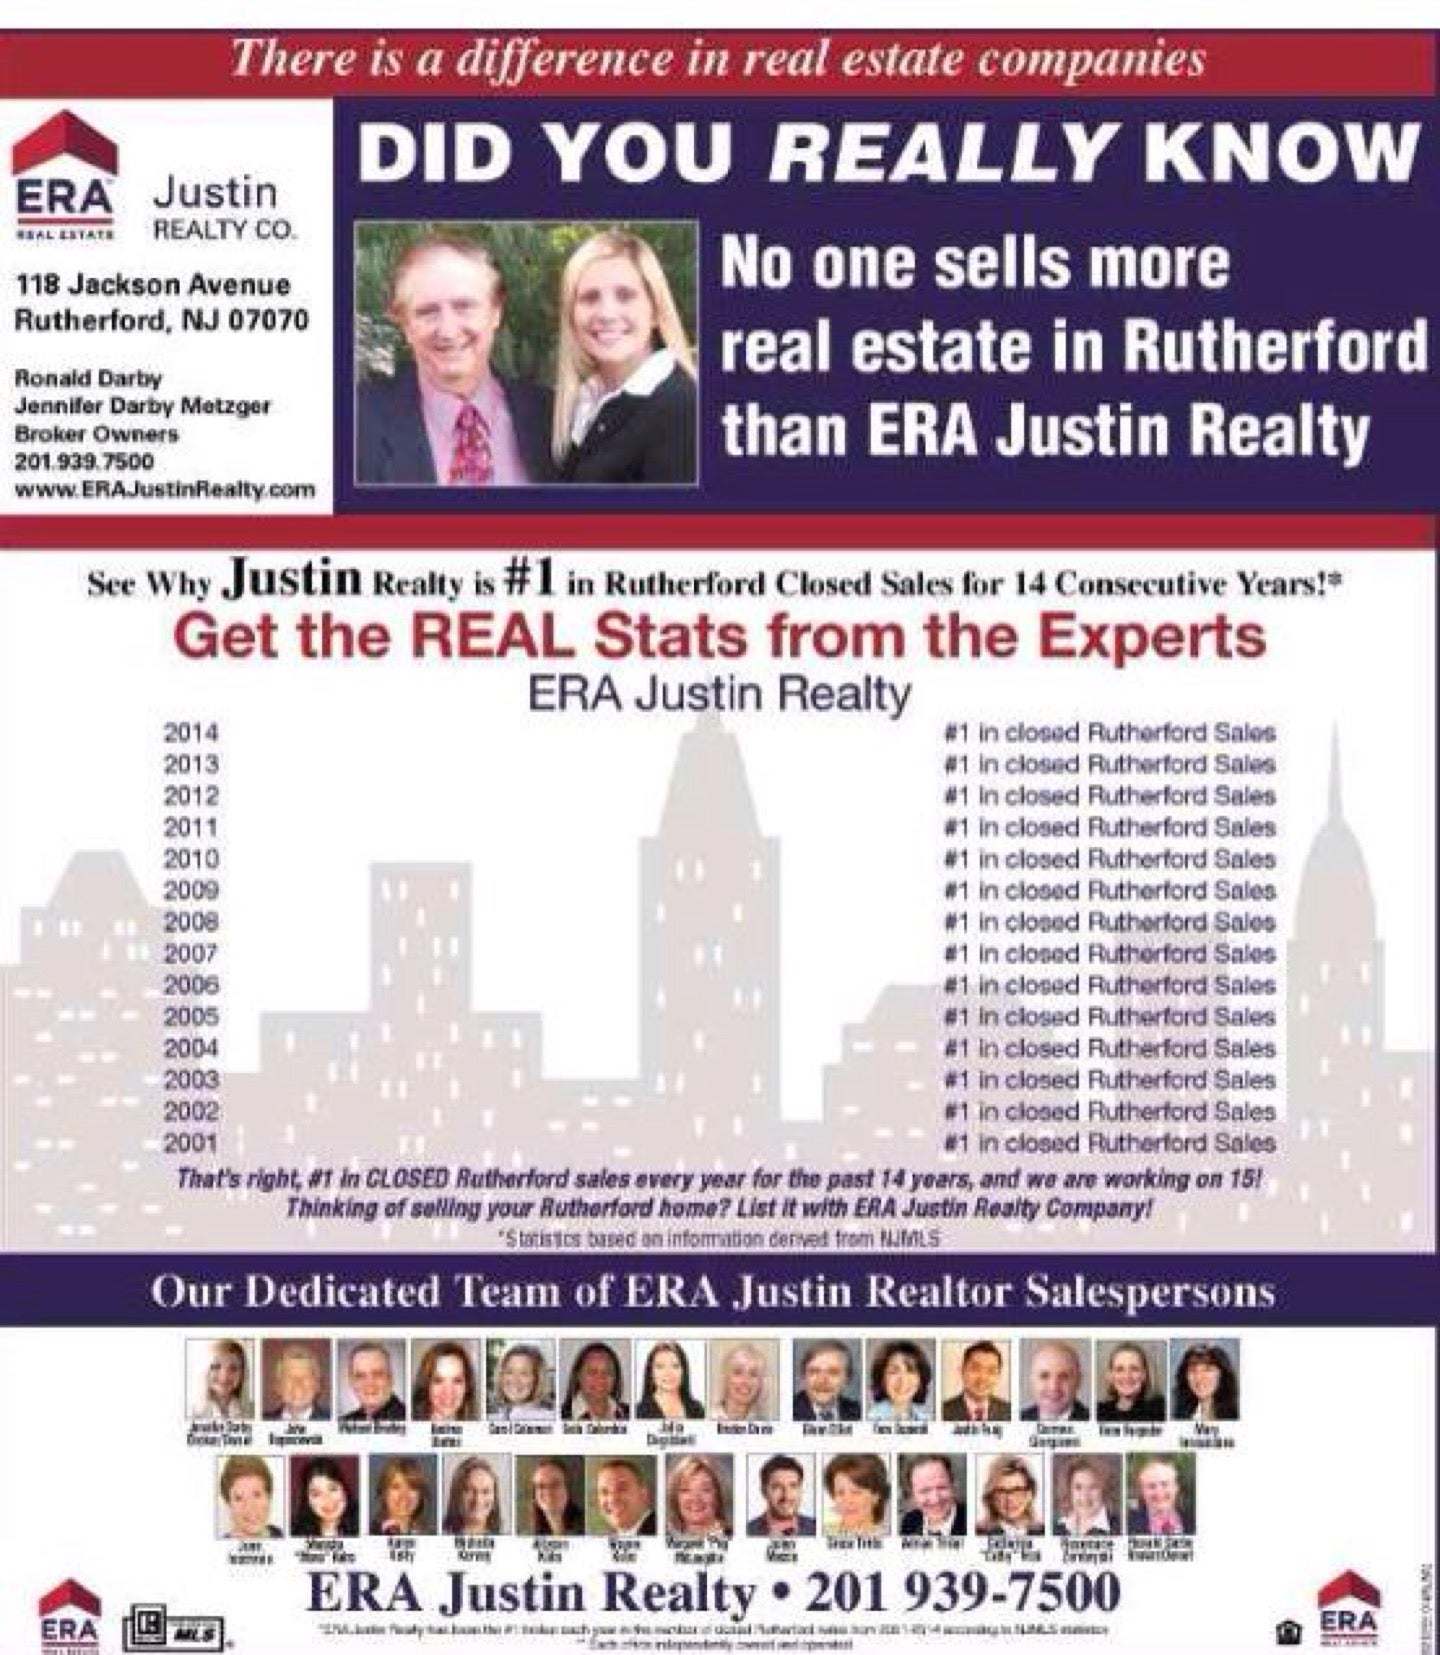 E R A Justin Realty Co,